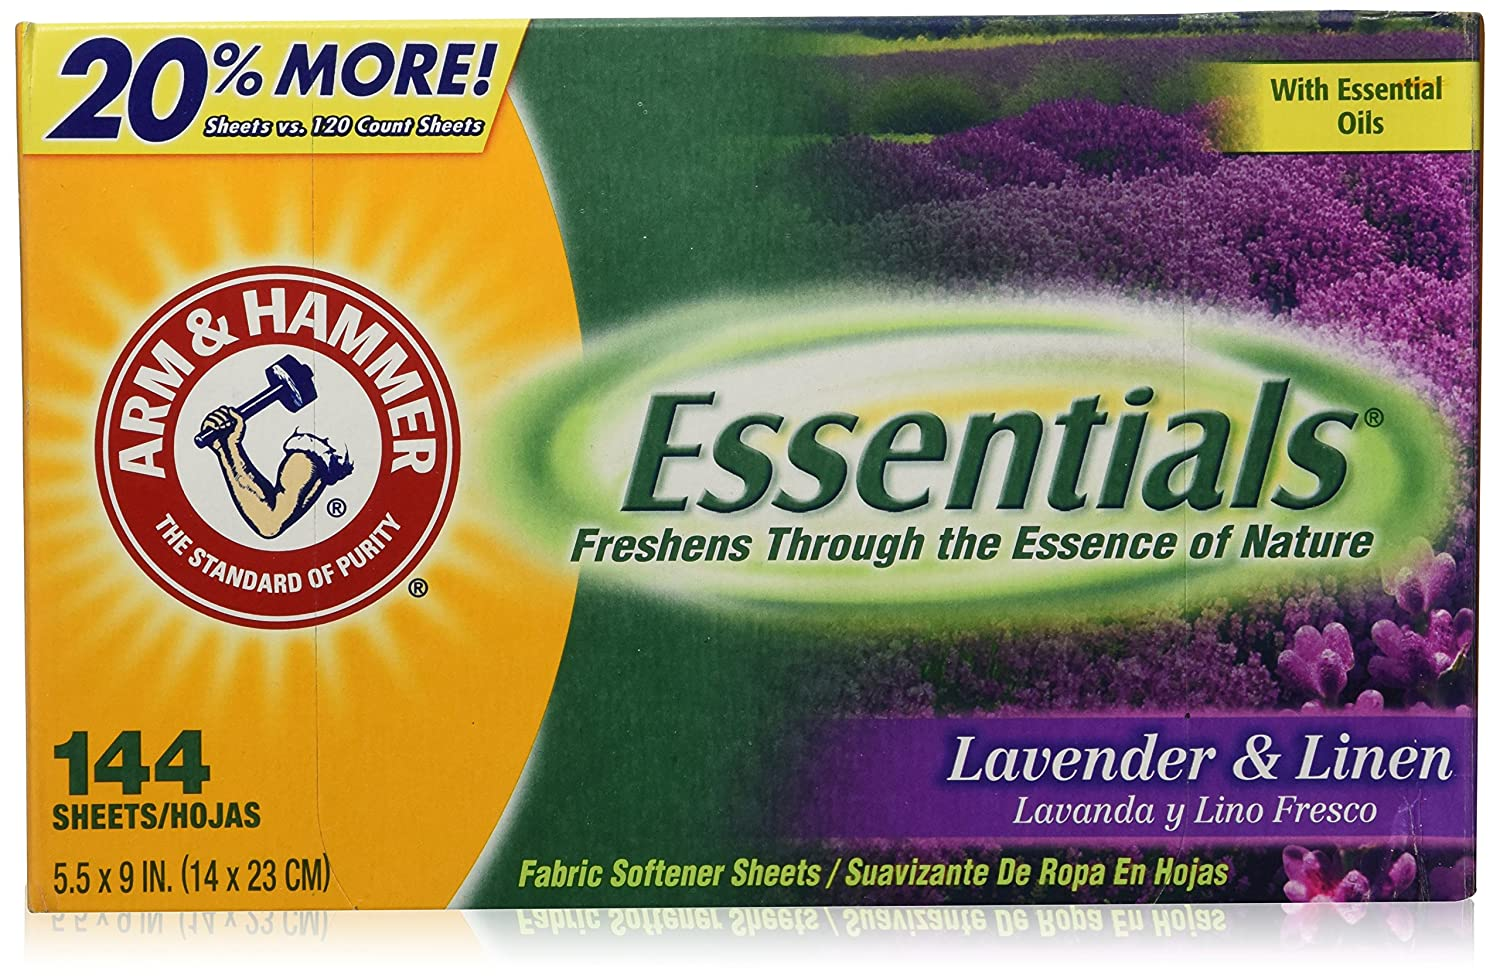 Arm & Hammer Essentials Dryer Sheets, Lavender & Linen, 144 Count